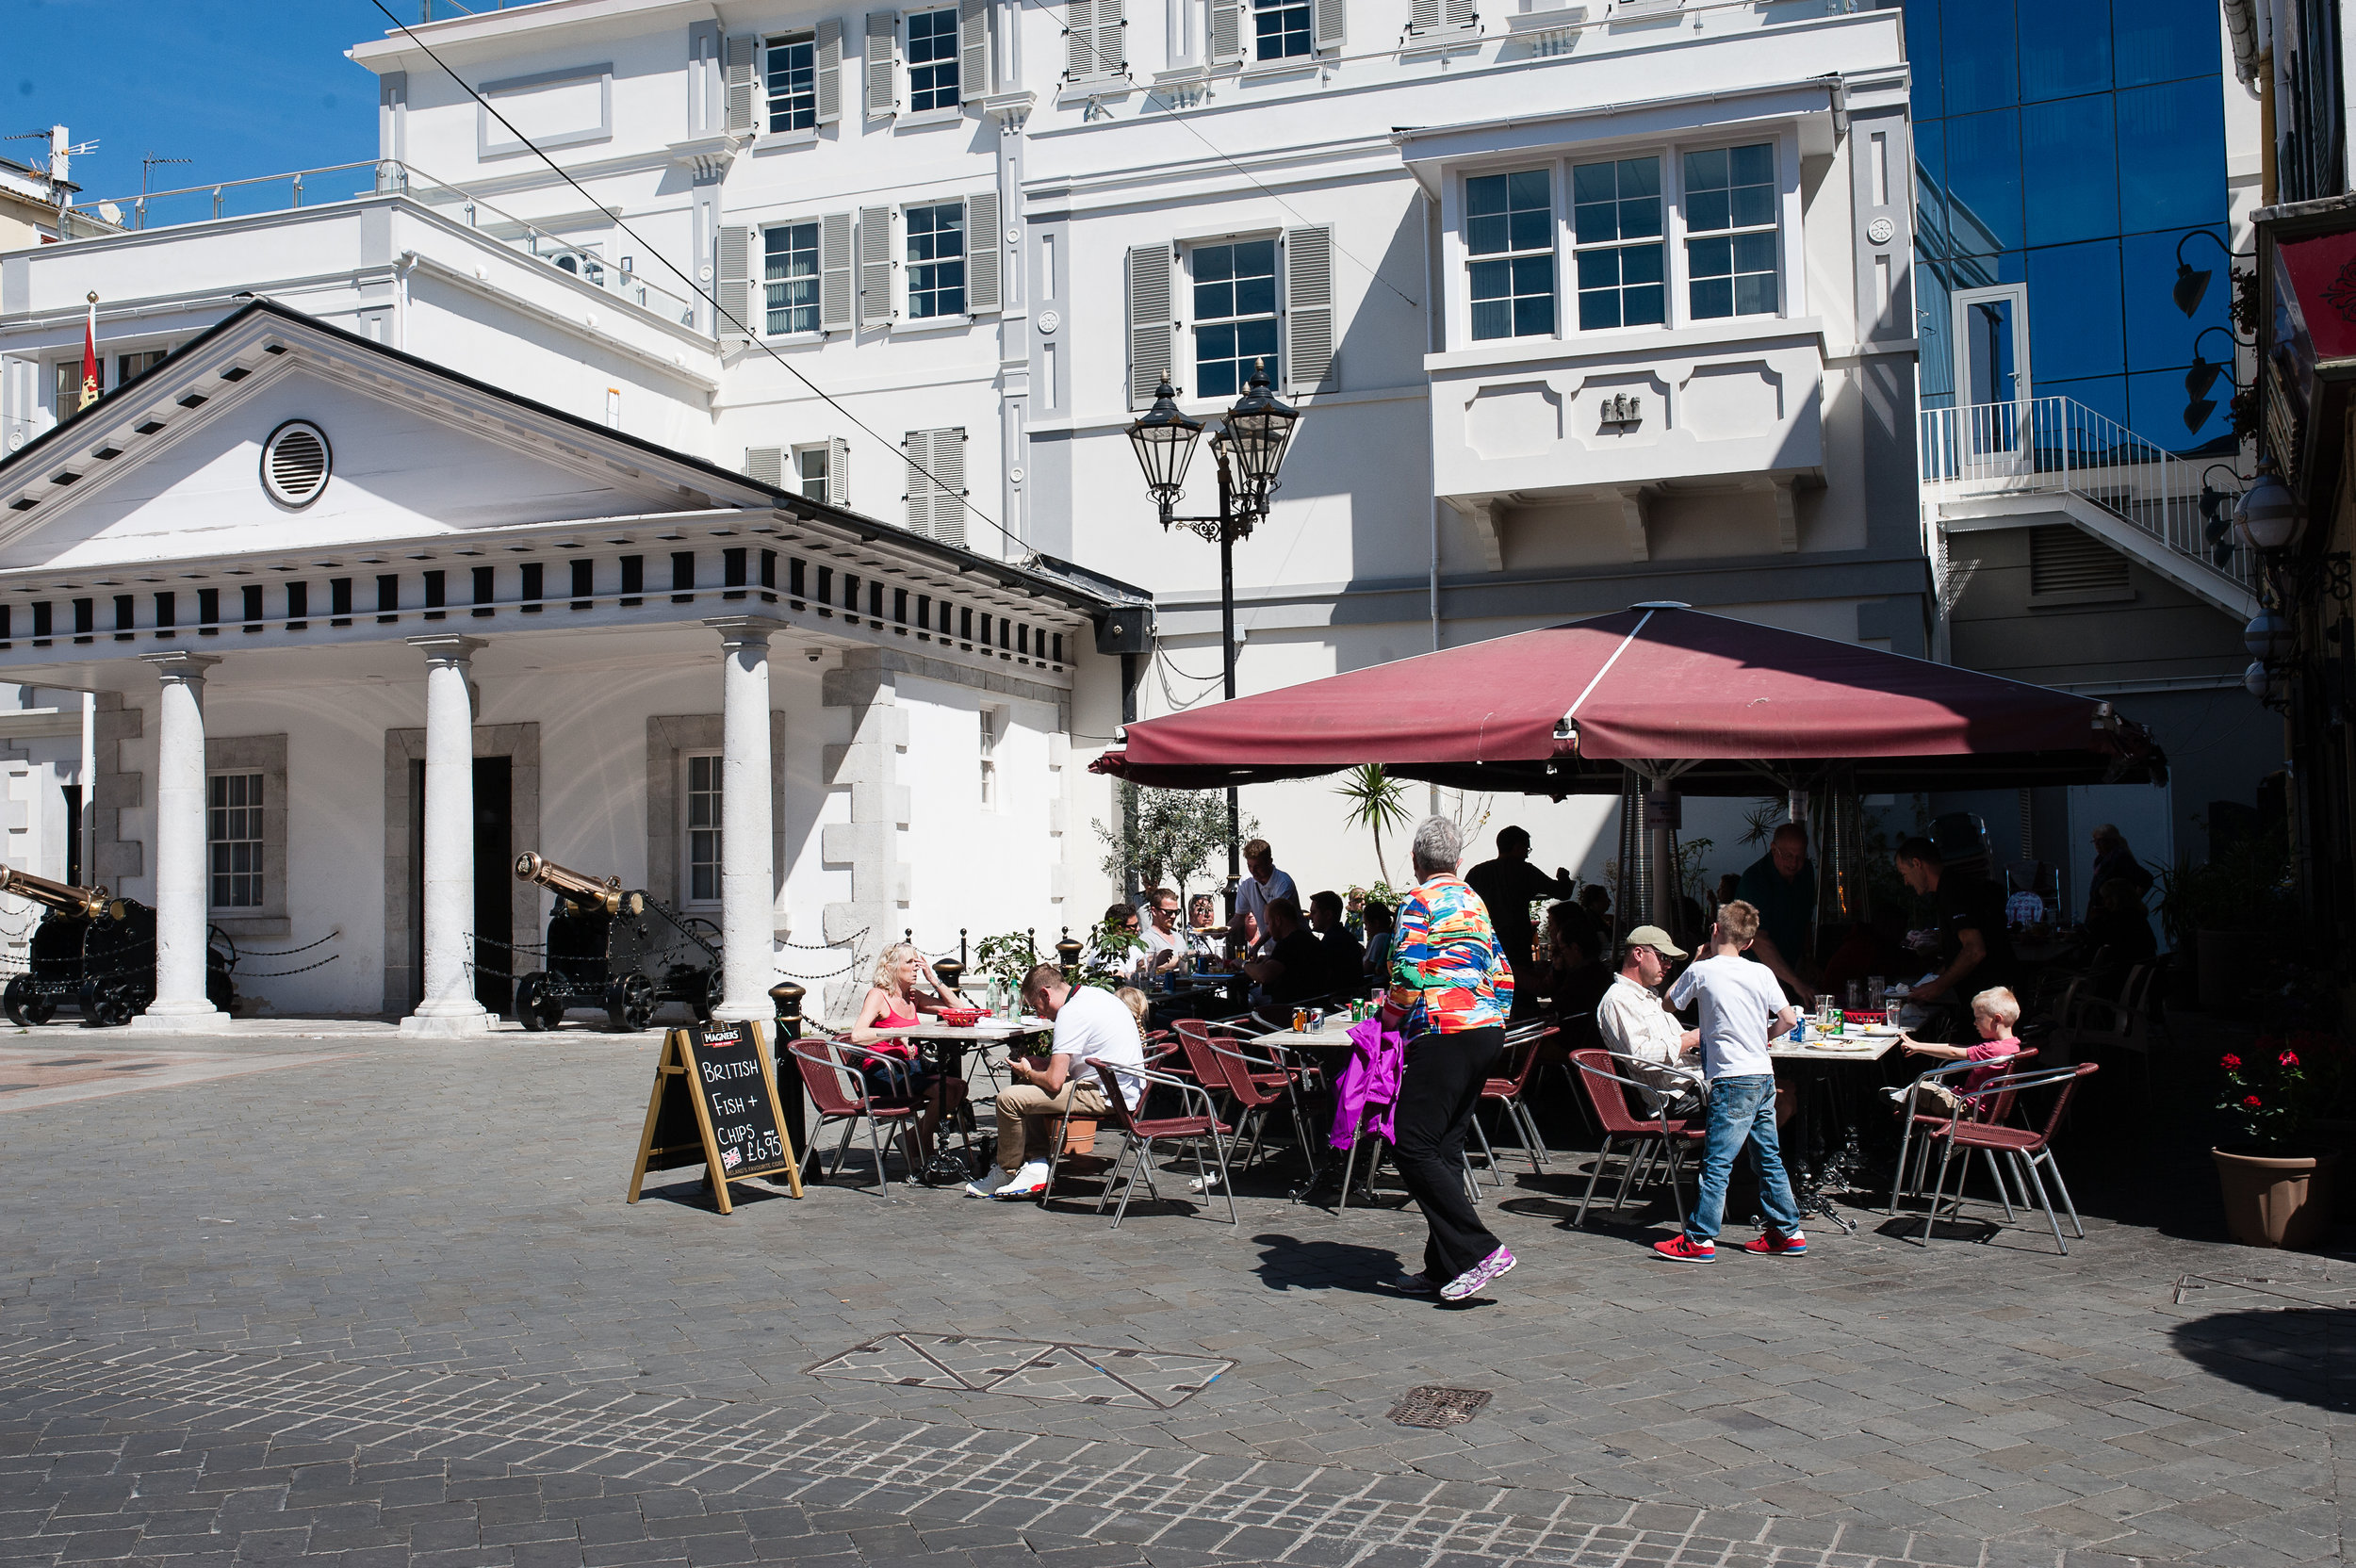 Fish and chips in front of the courthouse in Gibraltar.